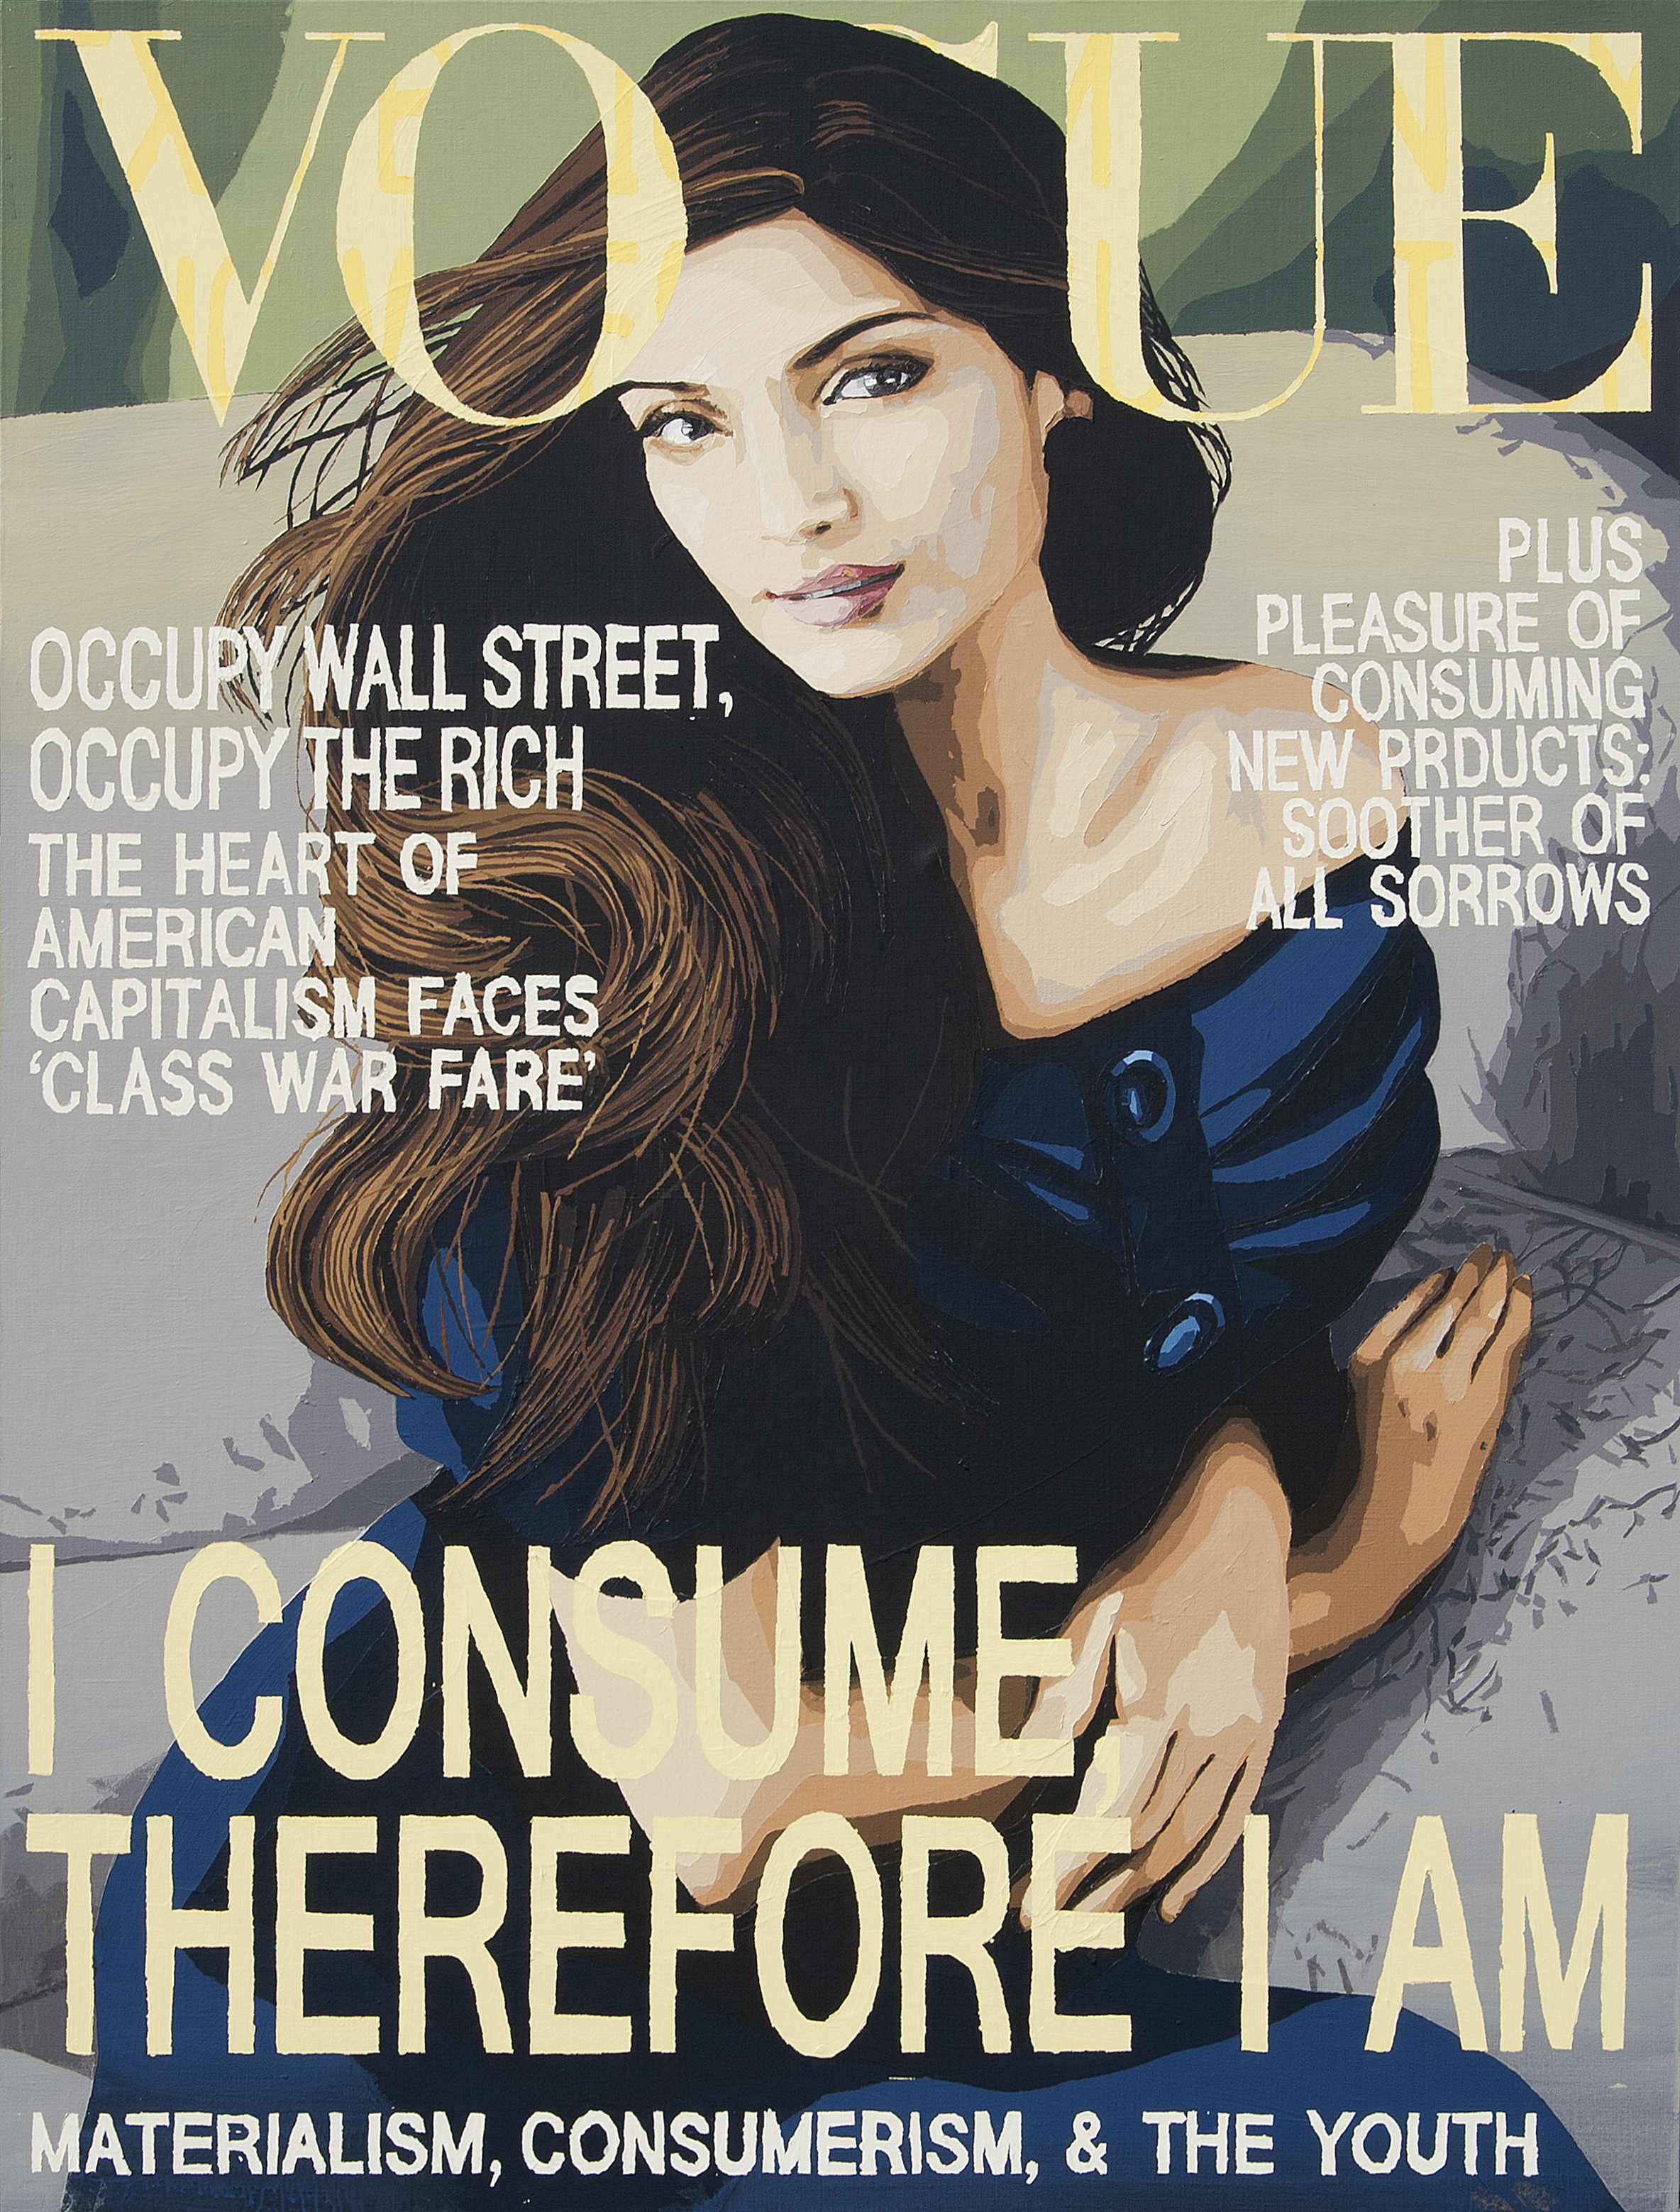 VOGUE NOVEMBER 2011 _ I CONSUME, THEREFORE I AM 162X123cm acrylic on canvas 2012.jpg